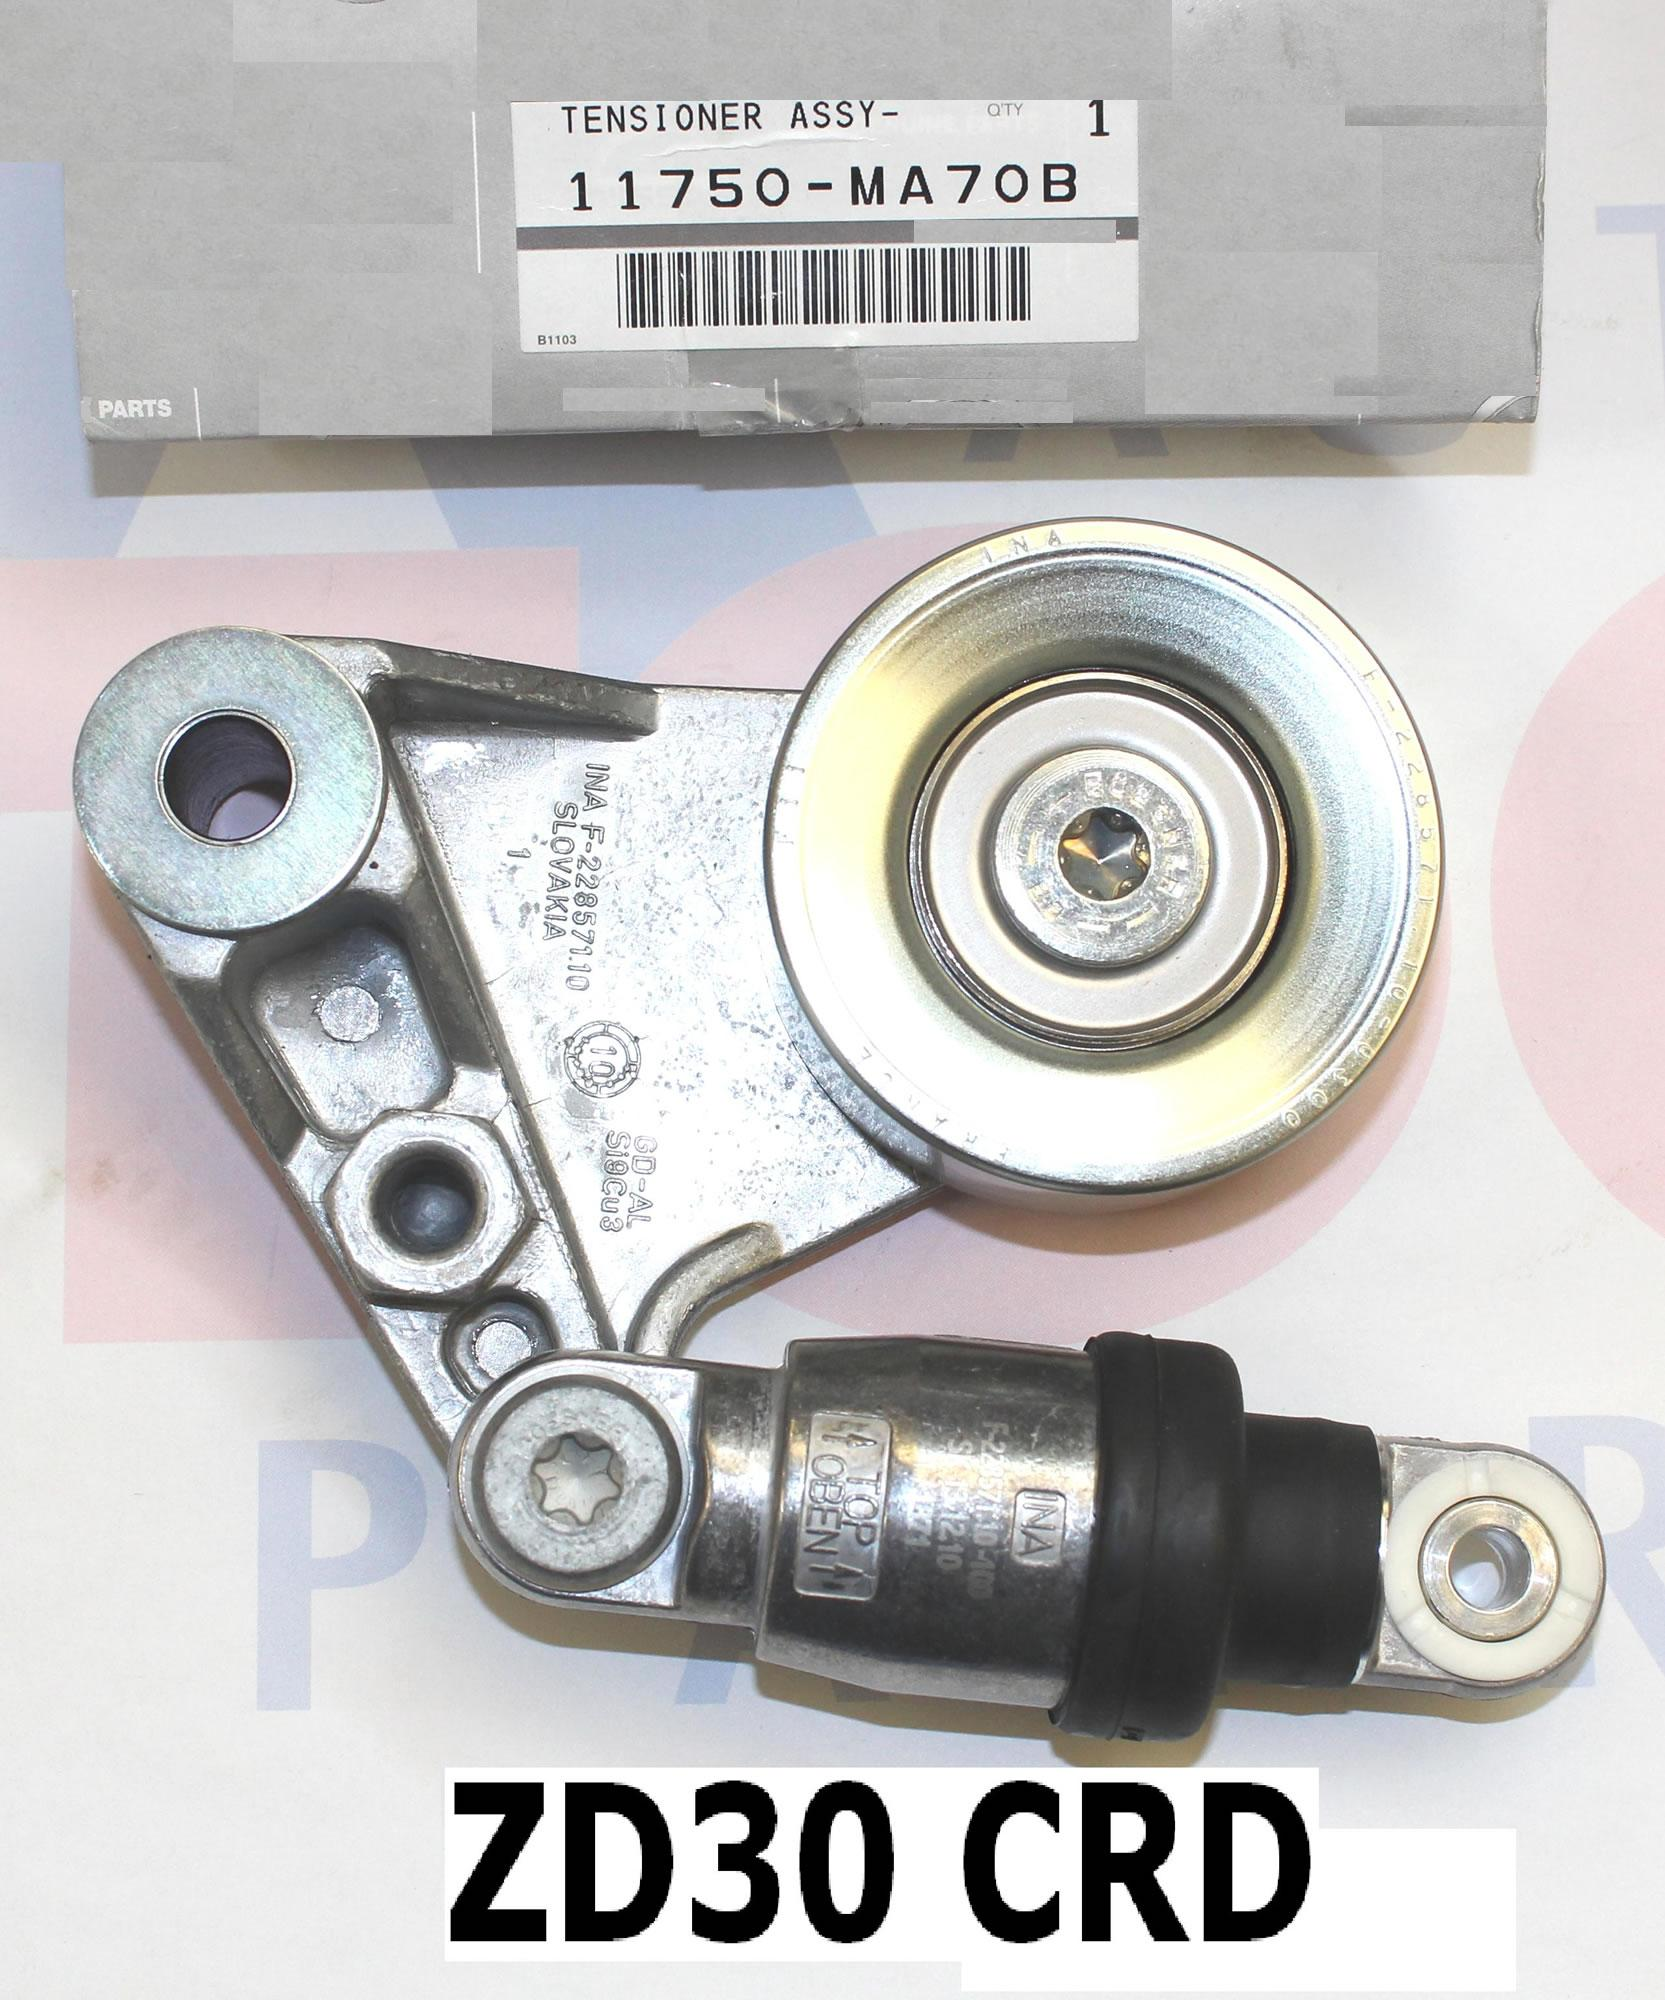 OEM Genuine fan belt Tensioner pulley assembly to fit Nissan GU Patrol with  CRD ZD30 engine